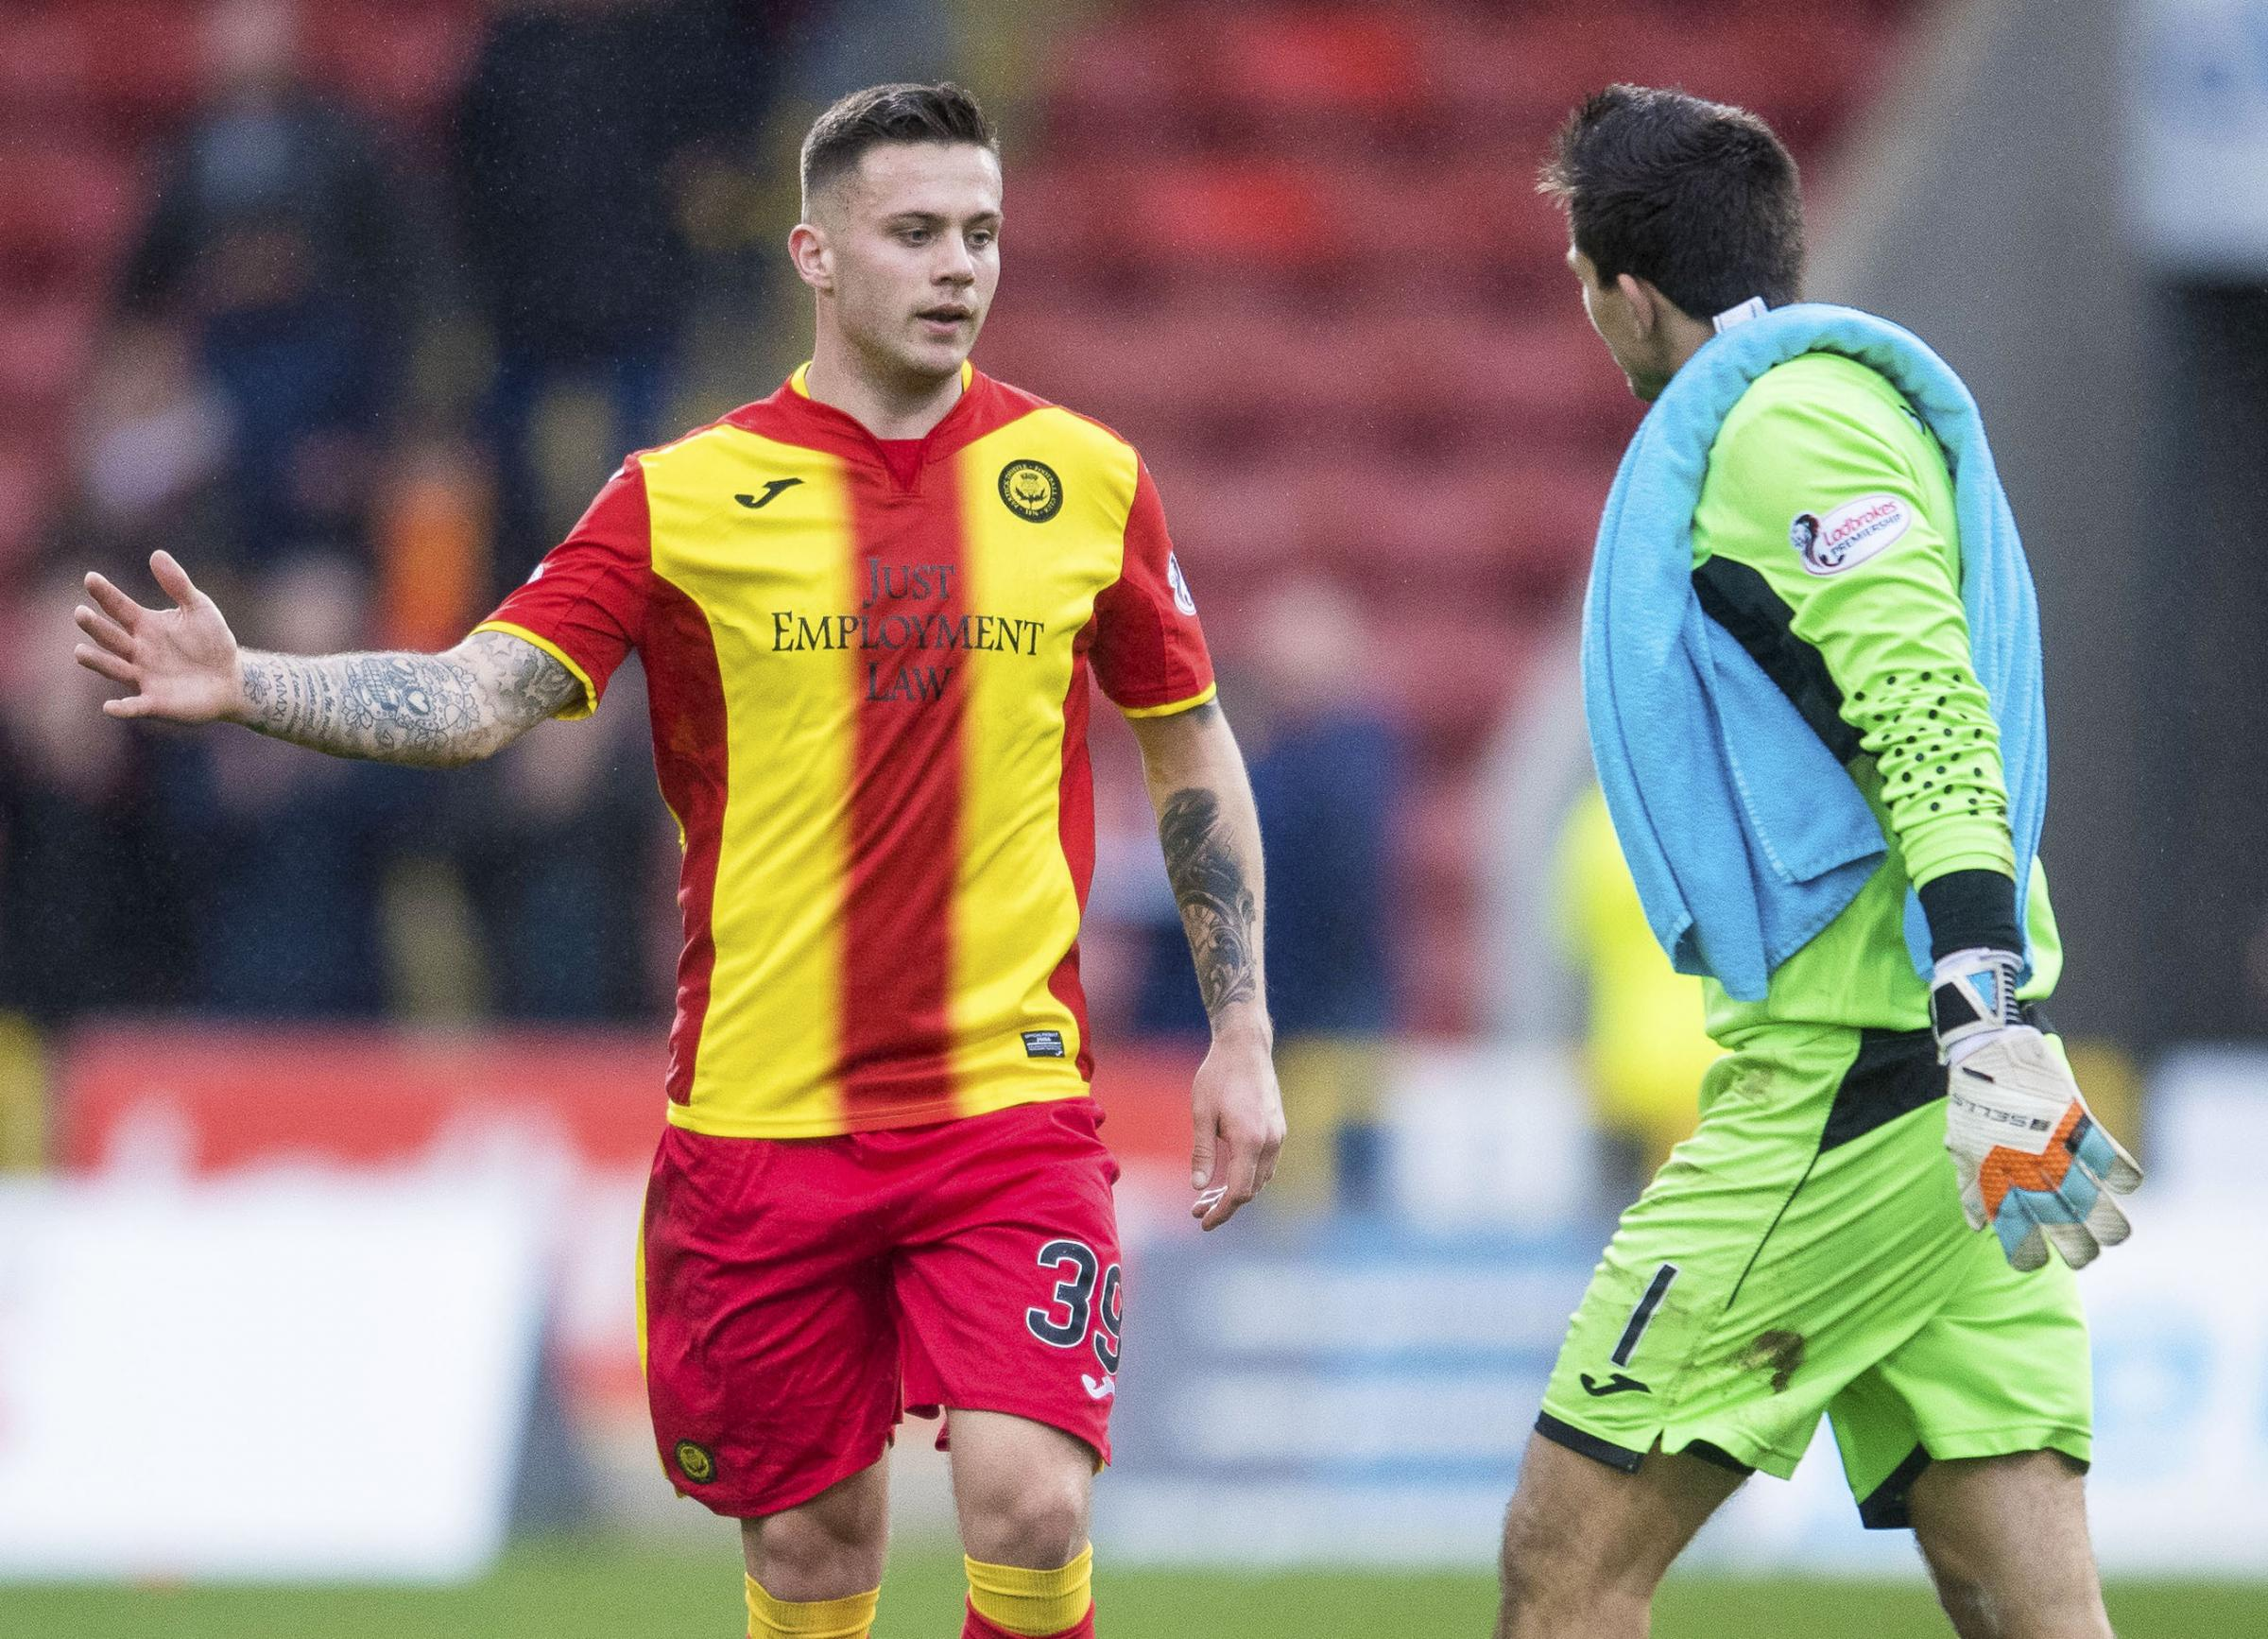 Miles Storey has now got two goals in his last three games for Partick Thistle.